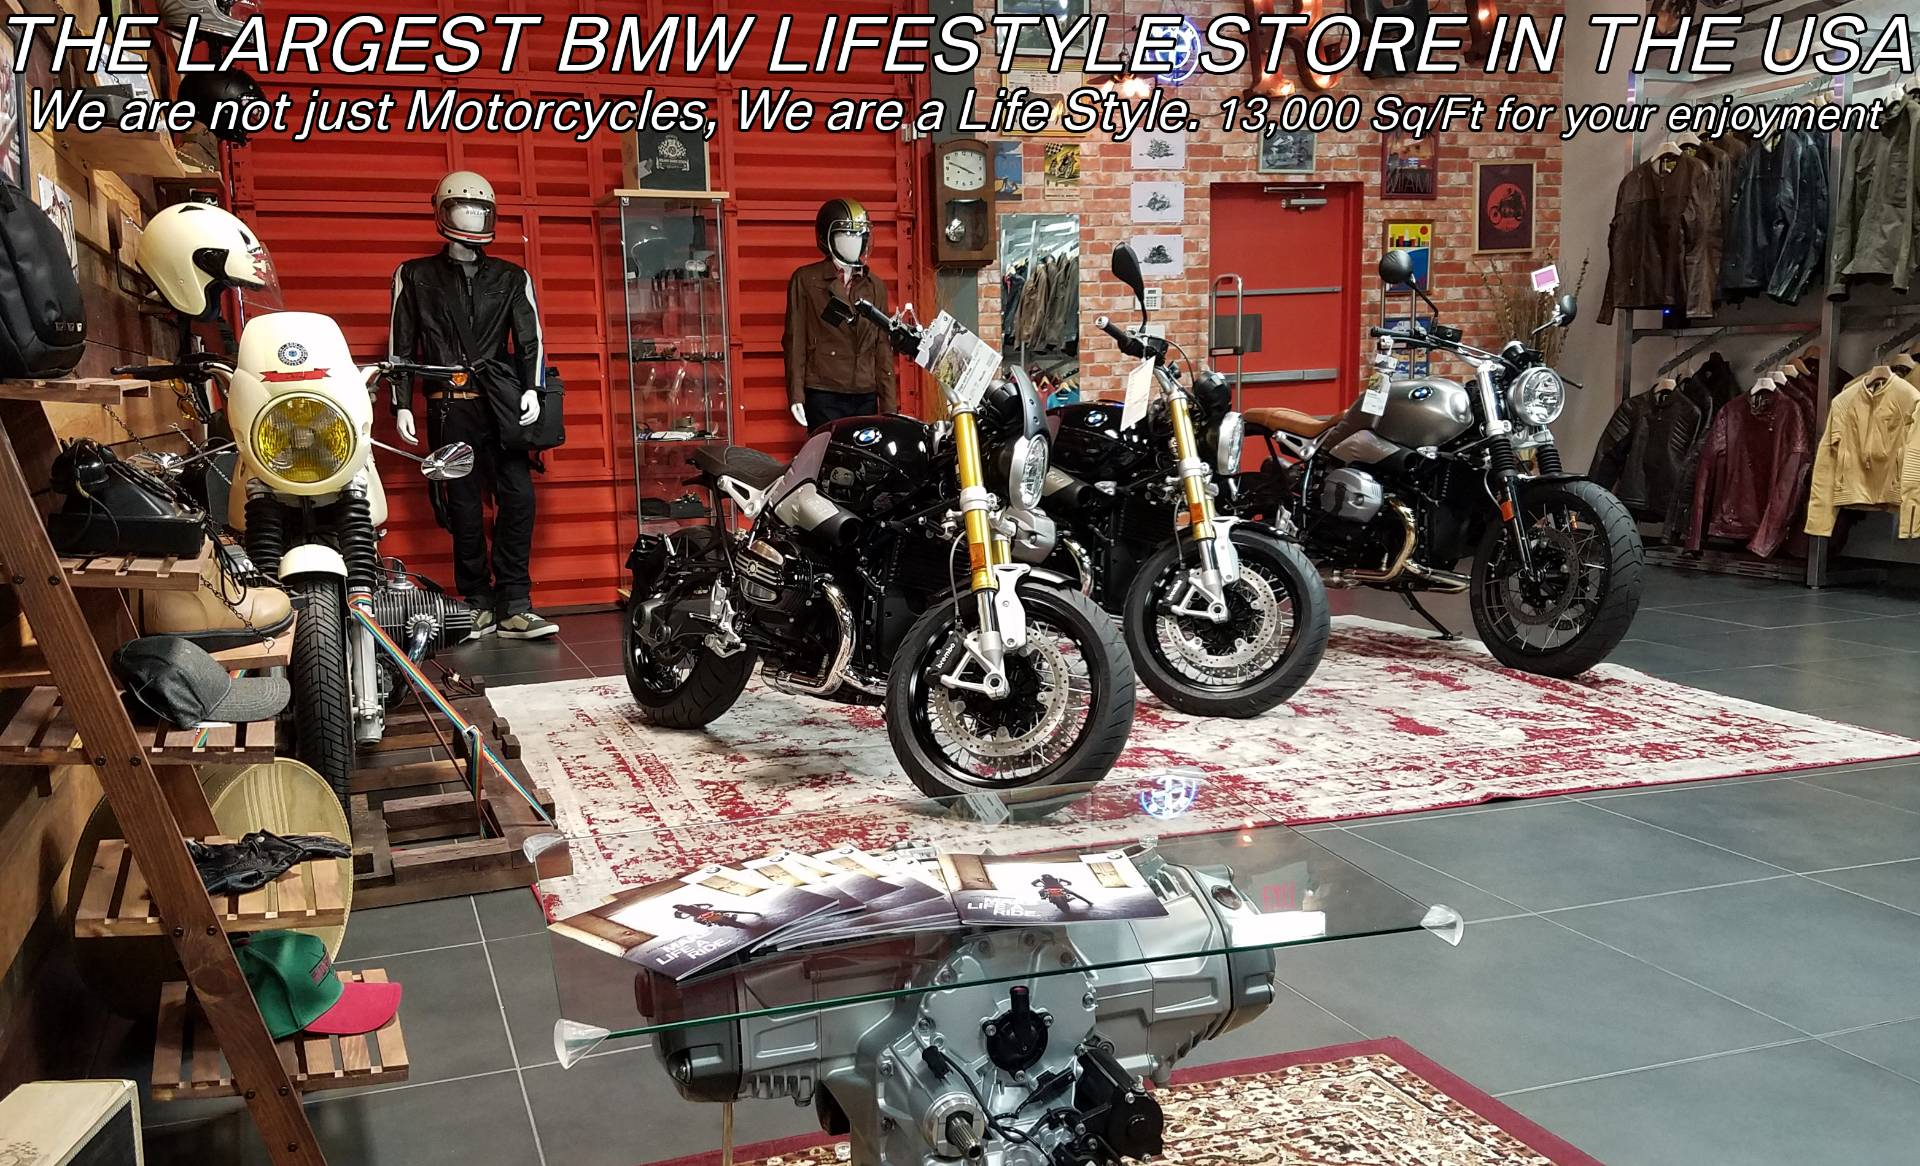 New 2019 BMW S 1000 R for sale, BMW S 1000R for sale, BMW Motorcycle S1000R, new BMW R, Sport, roadster, naked. BMW Motorcycles of Miami, Motorcycles of Miami, Motorcycles Miami, New Motorcycles, Used Motorcycles, pre-owned. #BMWMotorcyclesOfMiami #MotorcyclesOfMiami #MotorcyclesMiami - Photo 27